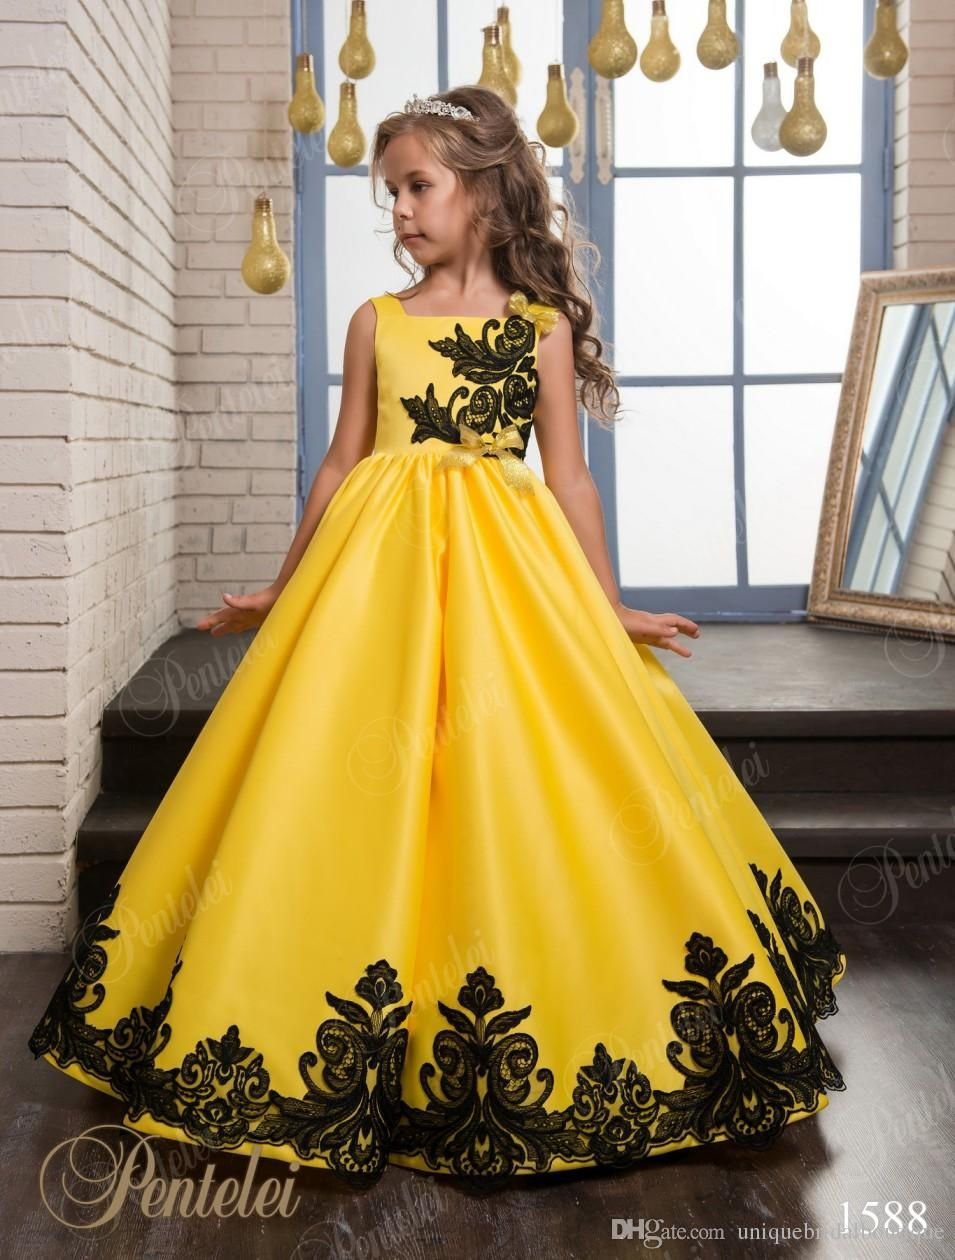 Girls christmas dresses for party yellow satin birthday party